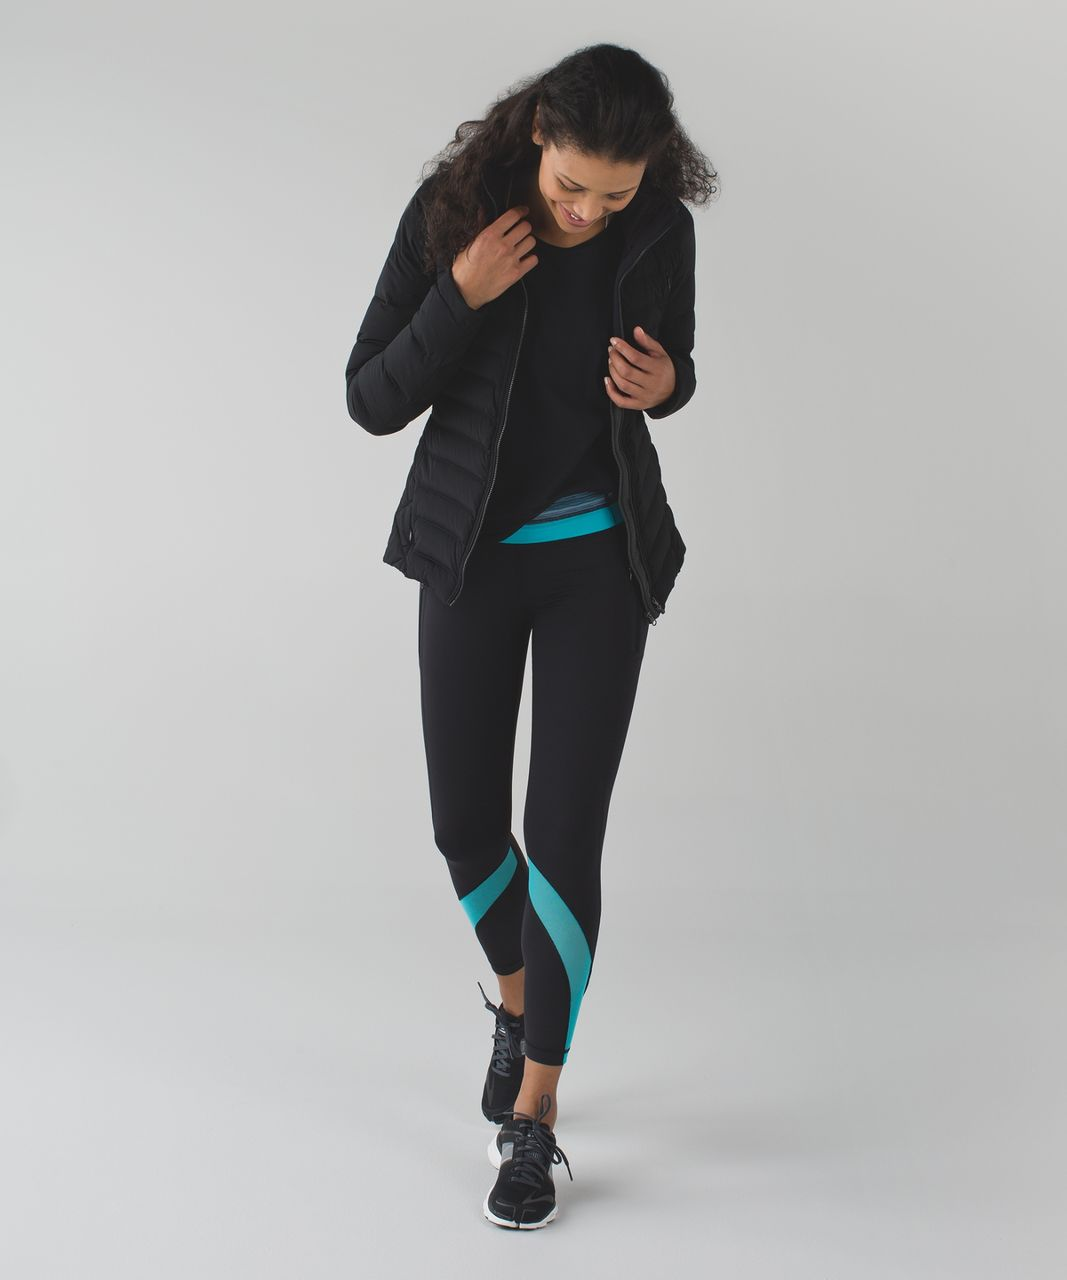 Lululemon Inspire Tight II (Mesh) - Black / Space Dye Twist Naval Blue Peacock Blue